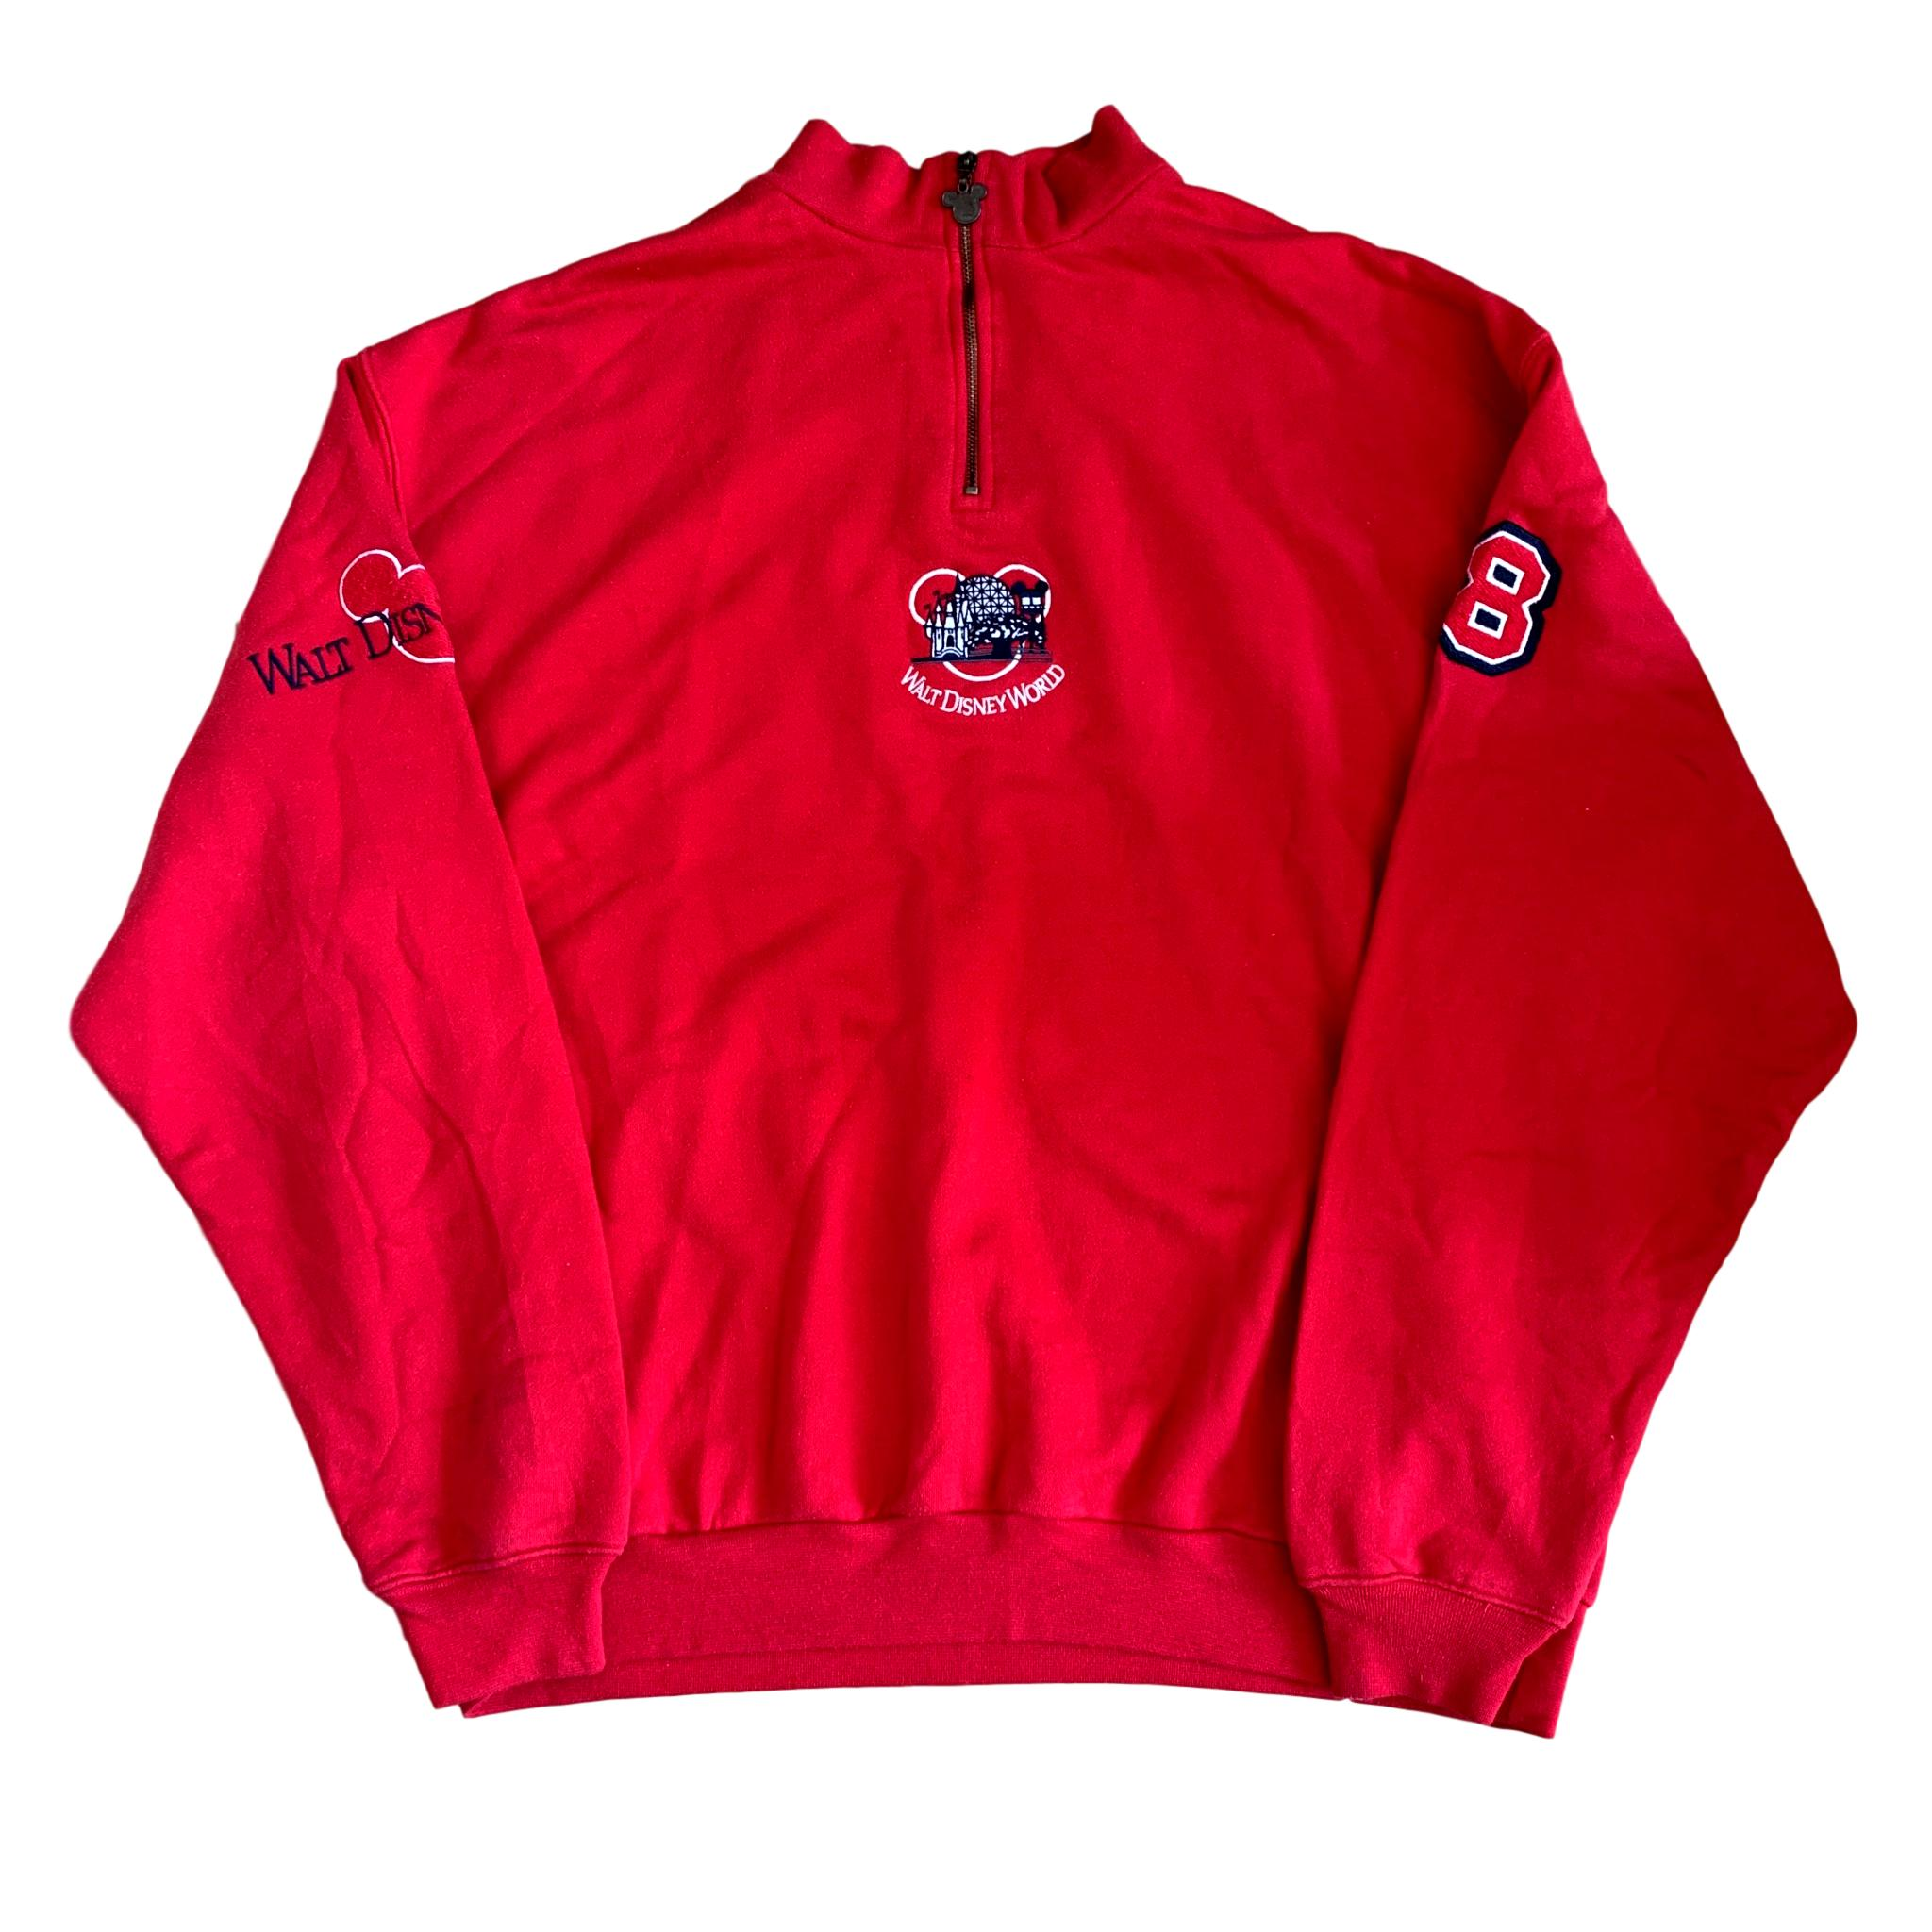 Vintage Walt Disney World Quarter Zip (XL)